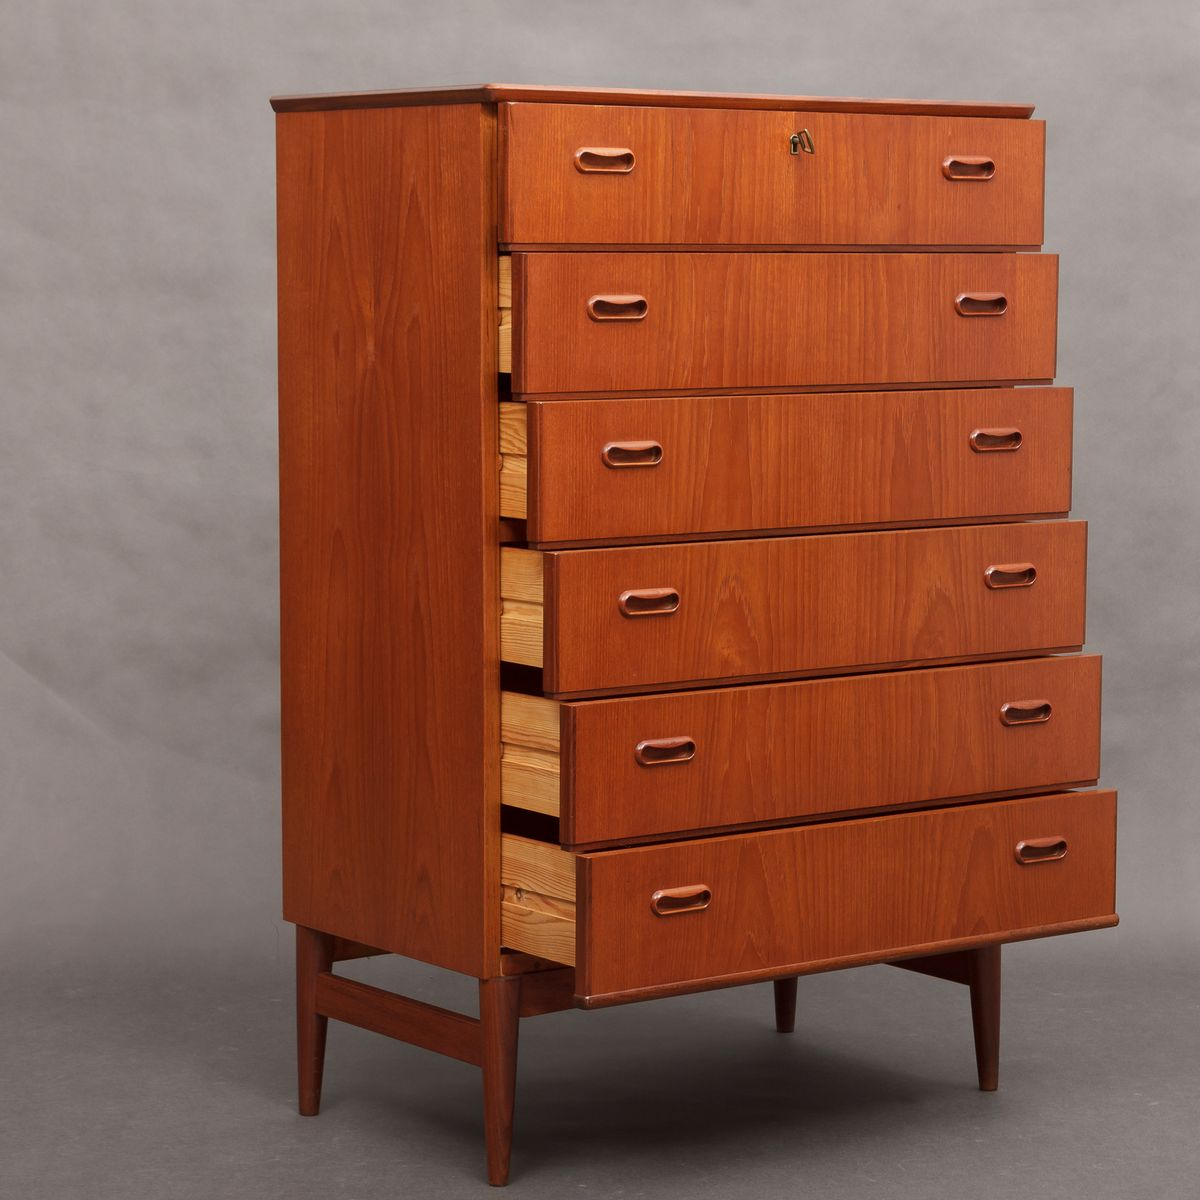 d nische mid century teak kommode 1950er bei pamono kaufen. Black Bedroom Furniture Sets. Home Design Ideas